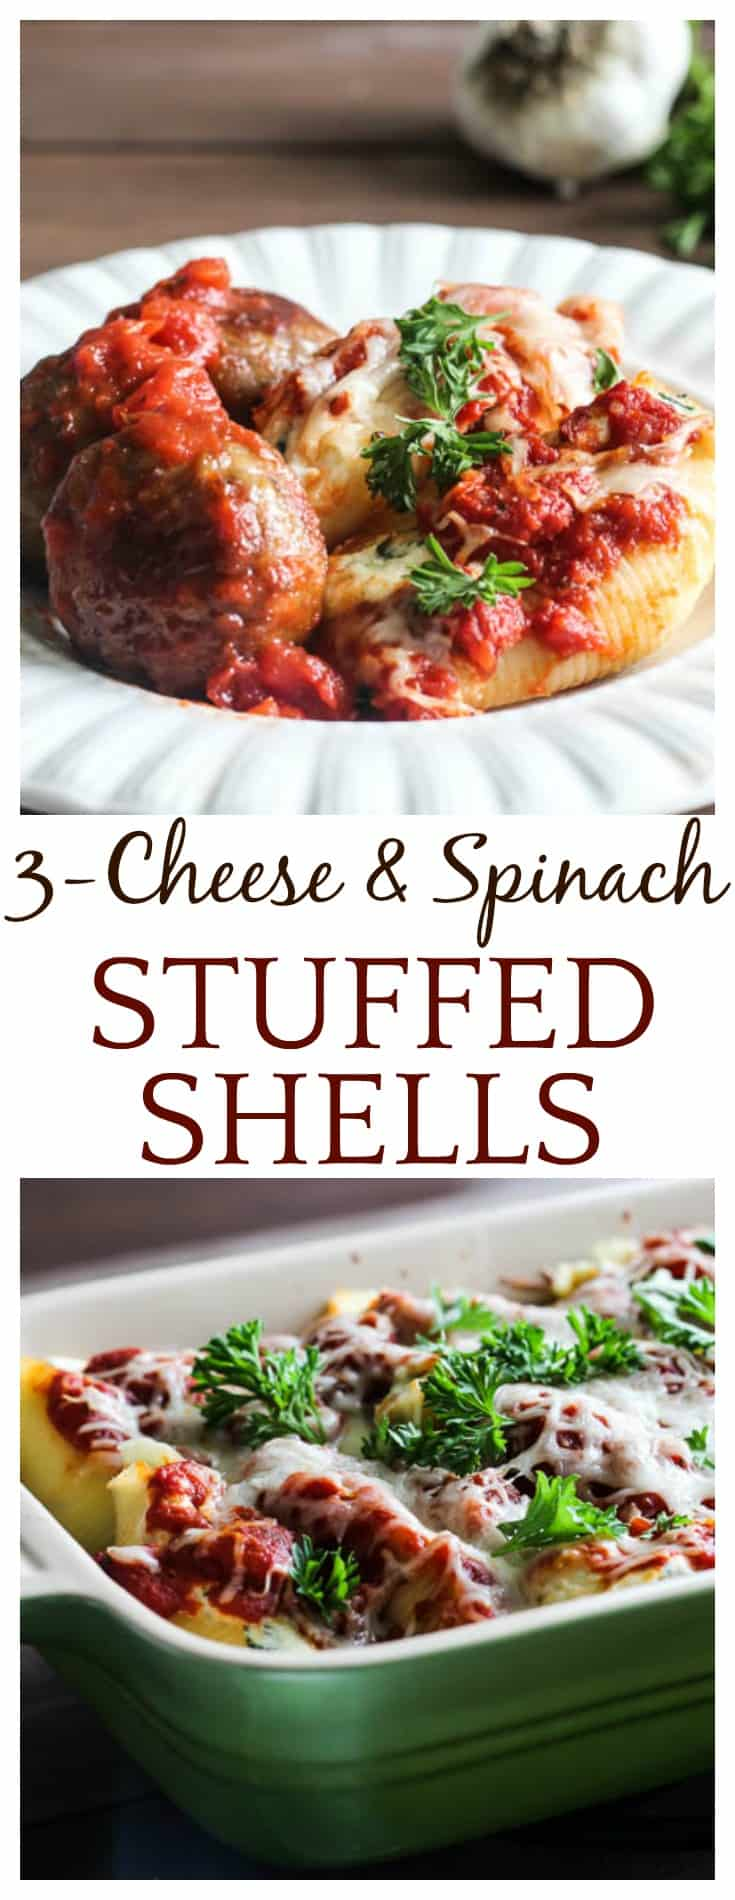 Hearty and delicious, 3-Cheese Spinach Stuffed Shells with Meatballs are a classic family favorite! This easy recipe is a great weeknight meal, the whole family will love! | #stuffedshells #pasta #italianfood #spinach #cheese #DLB